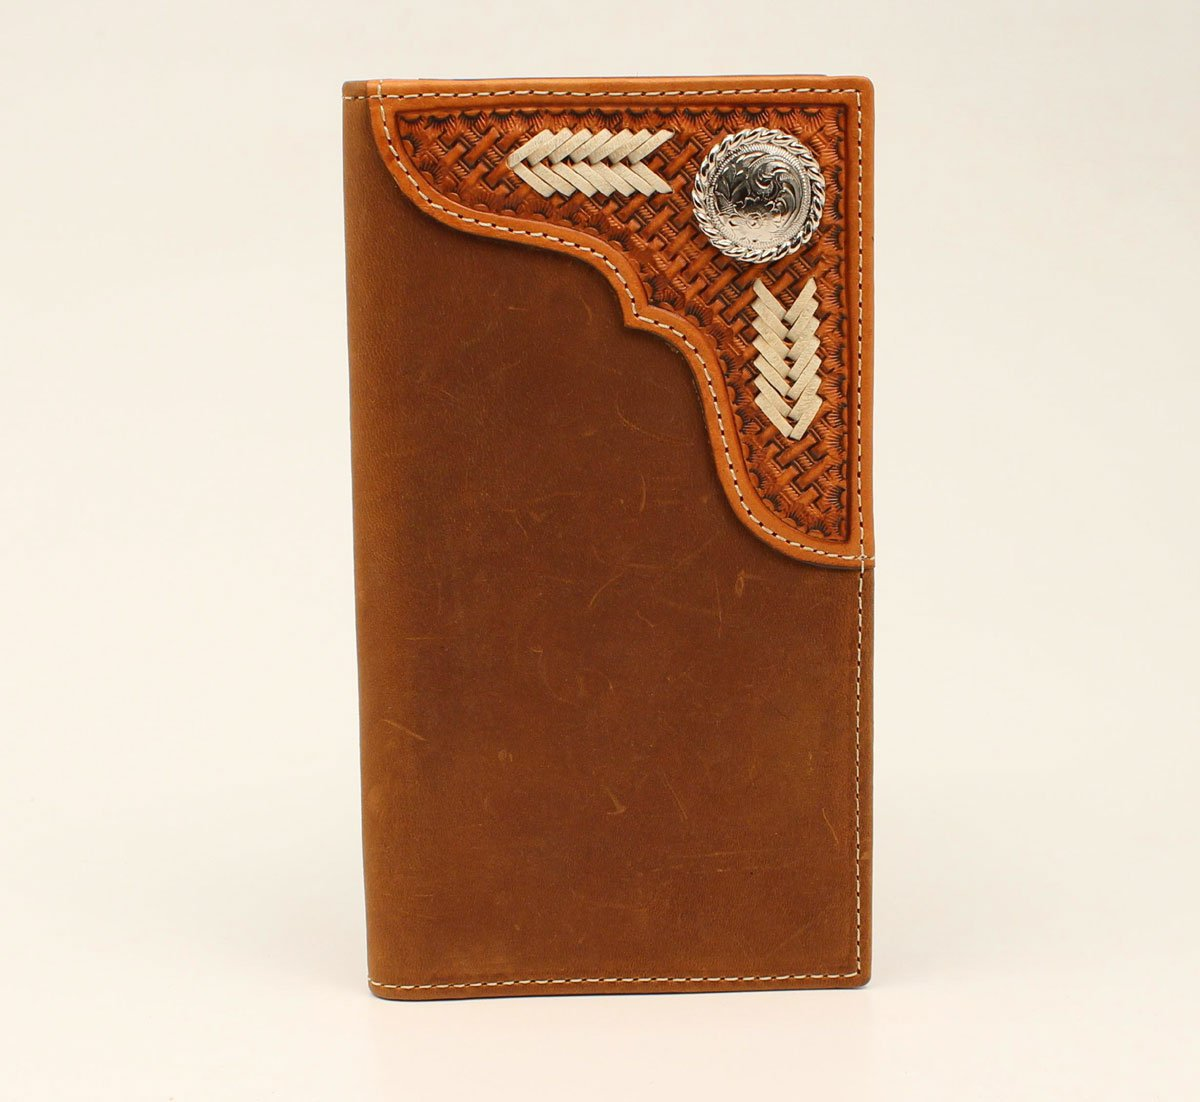 Basket Weave with Raw Lacing Rodeo Wallet from Nocona